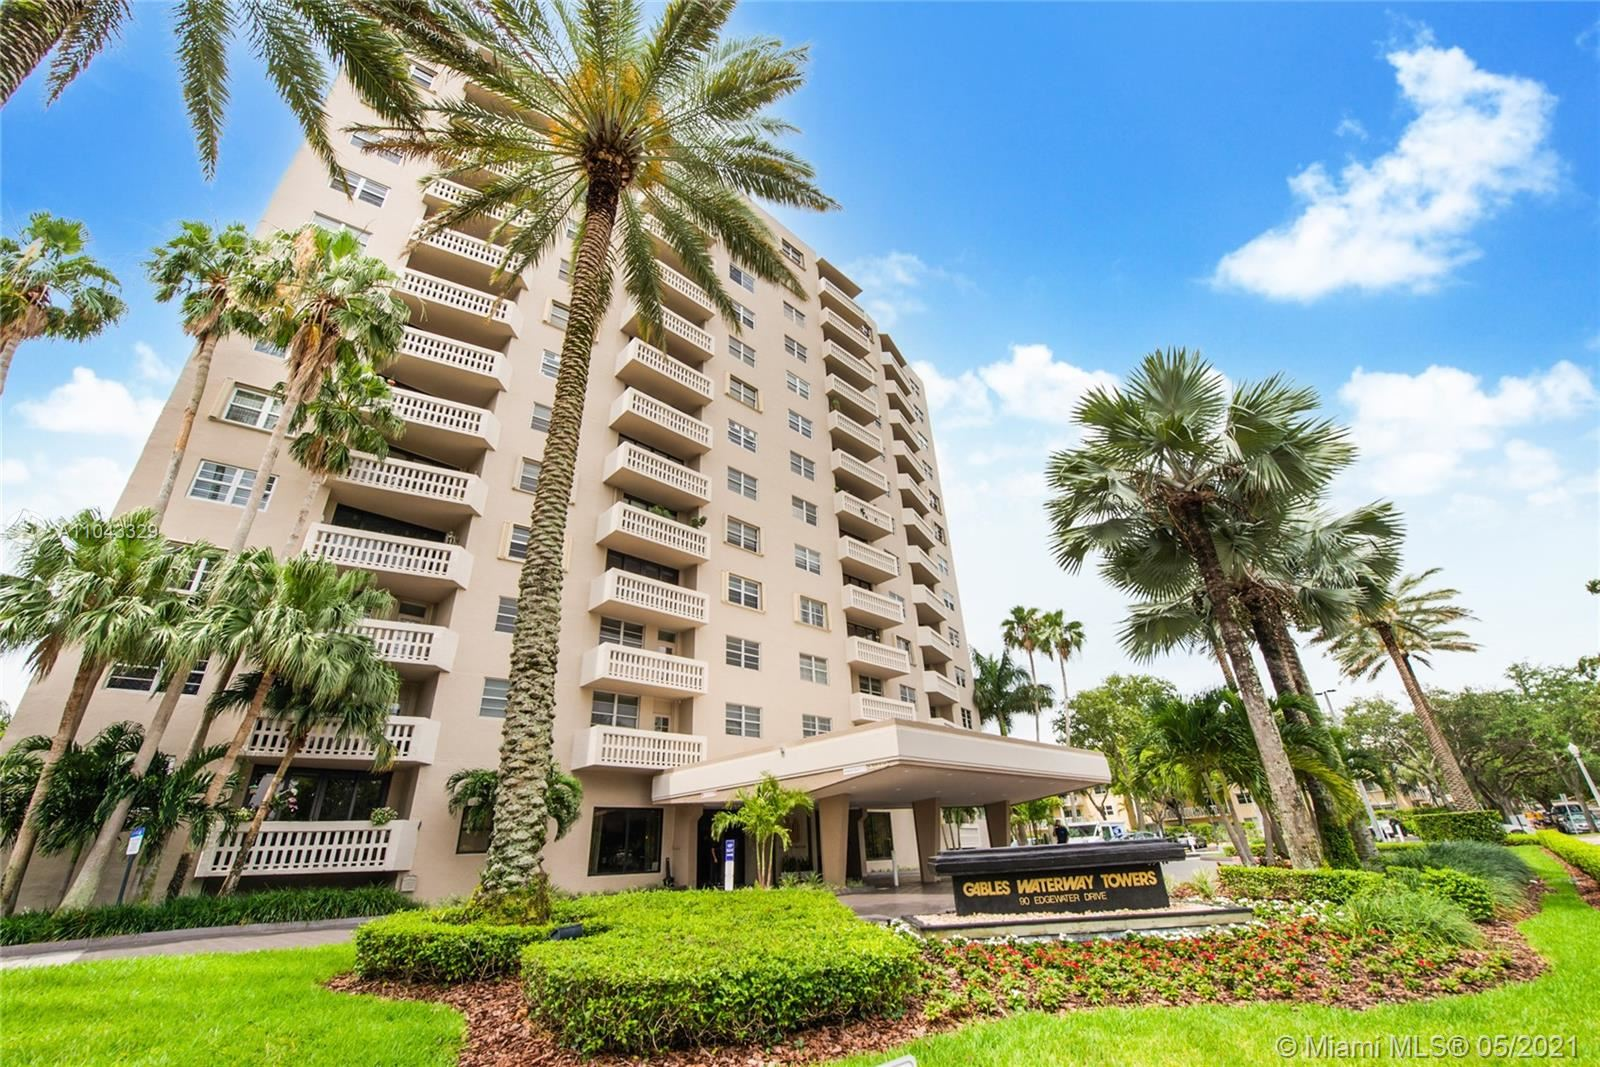 90 Edgewater Dr #308, Coral Gables, FL 33133 - #: A11043329